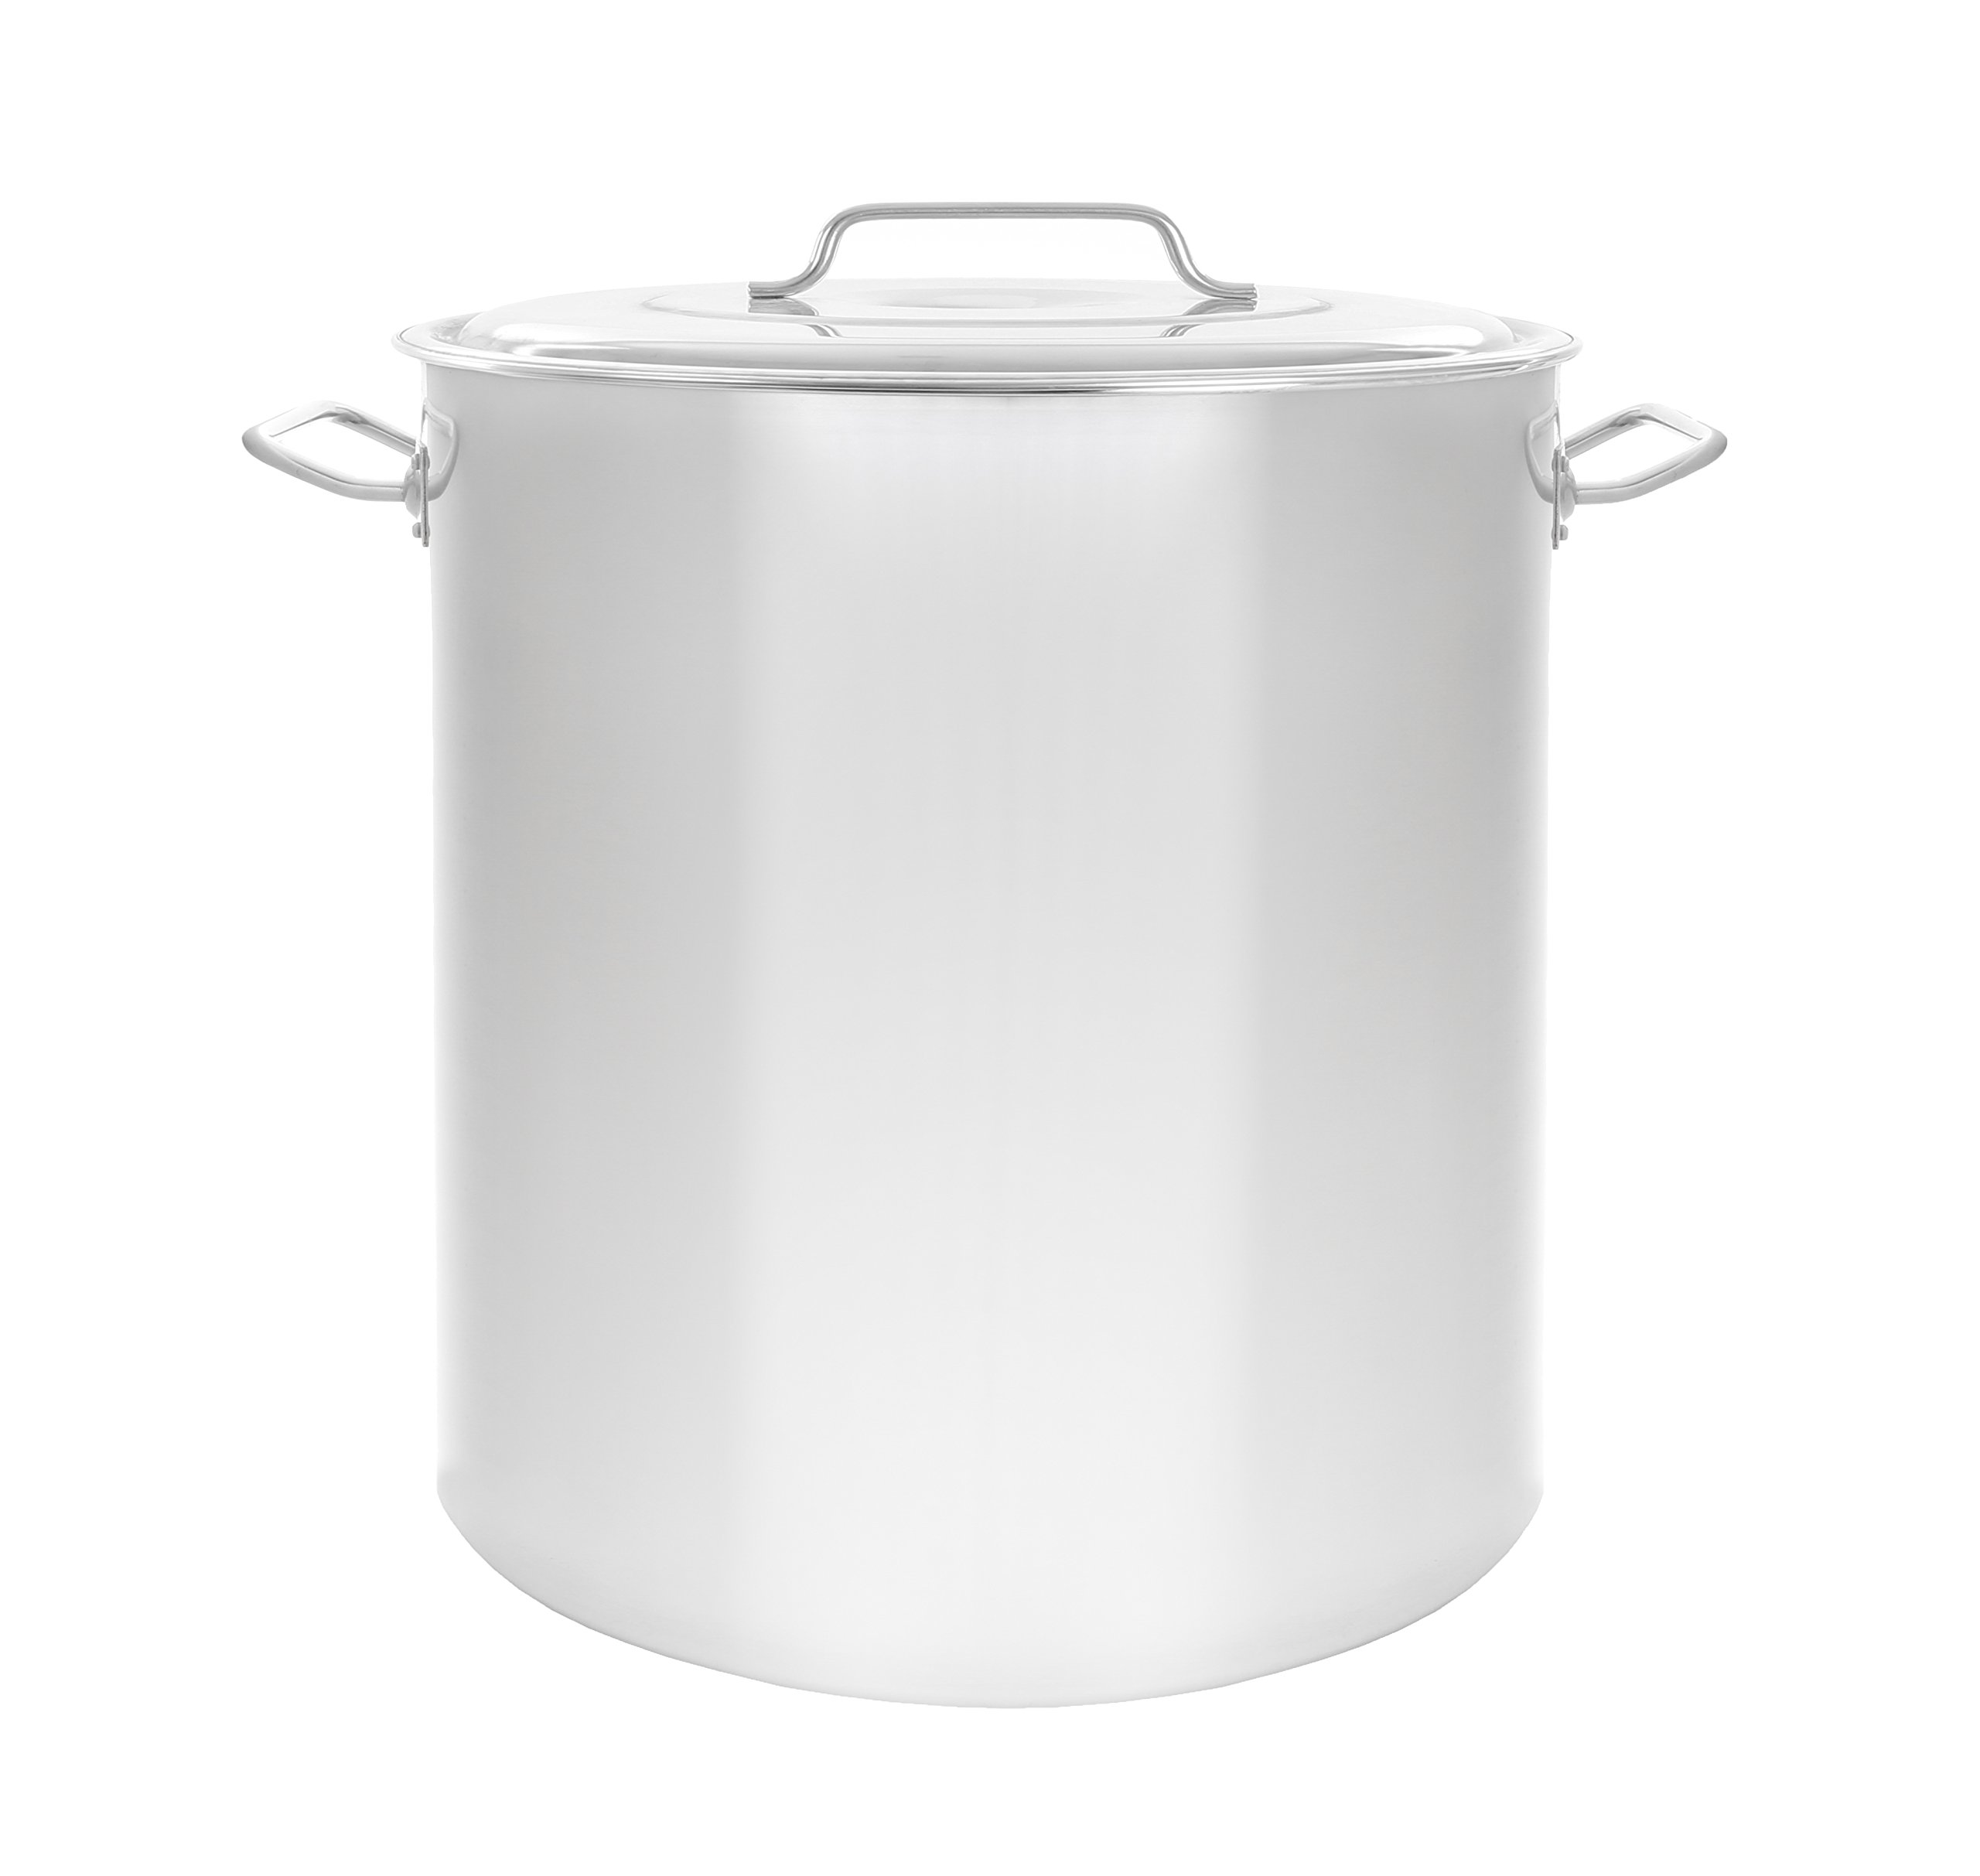 Concord 50 Quart Stainless Steel Stock Pot Cookware by Concord Cookware